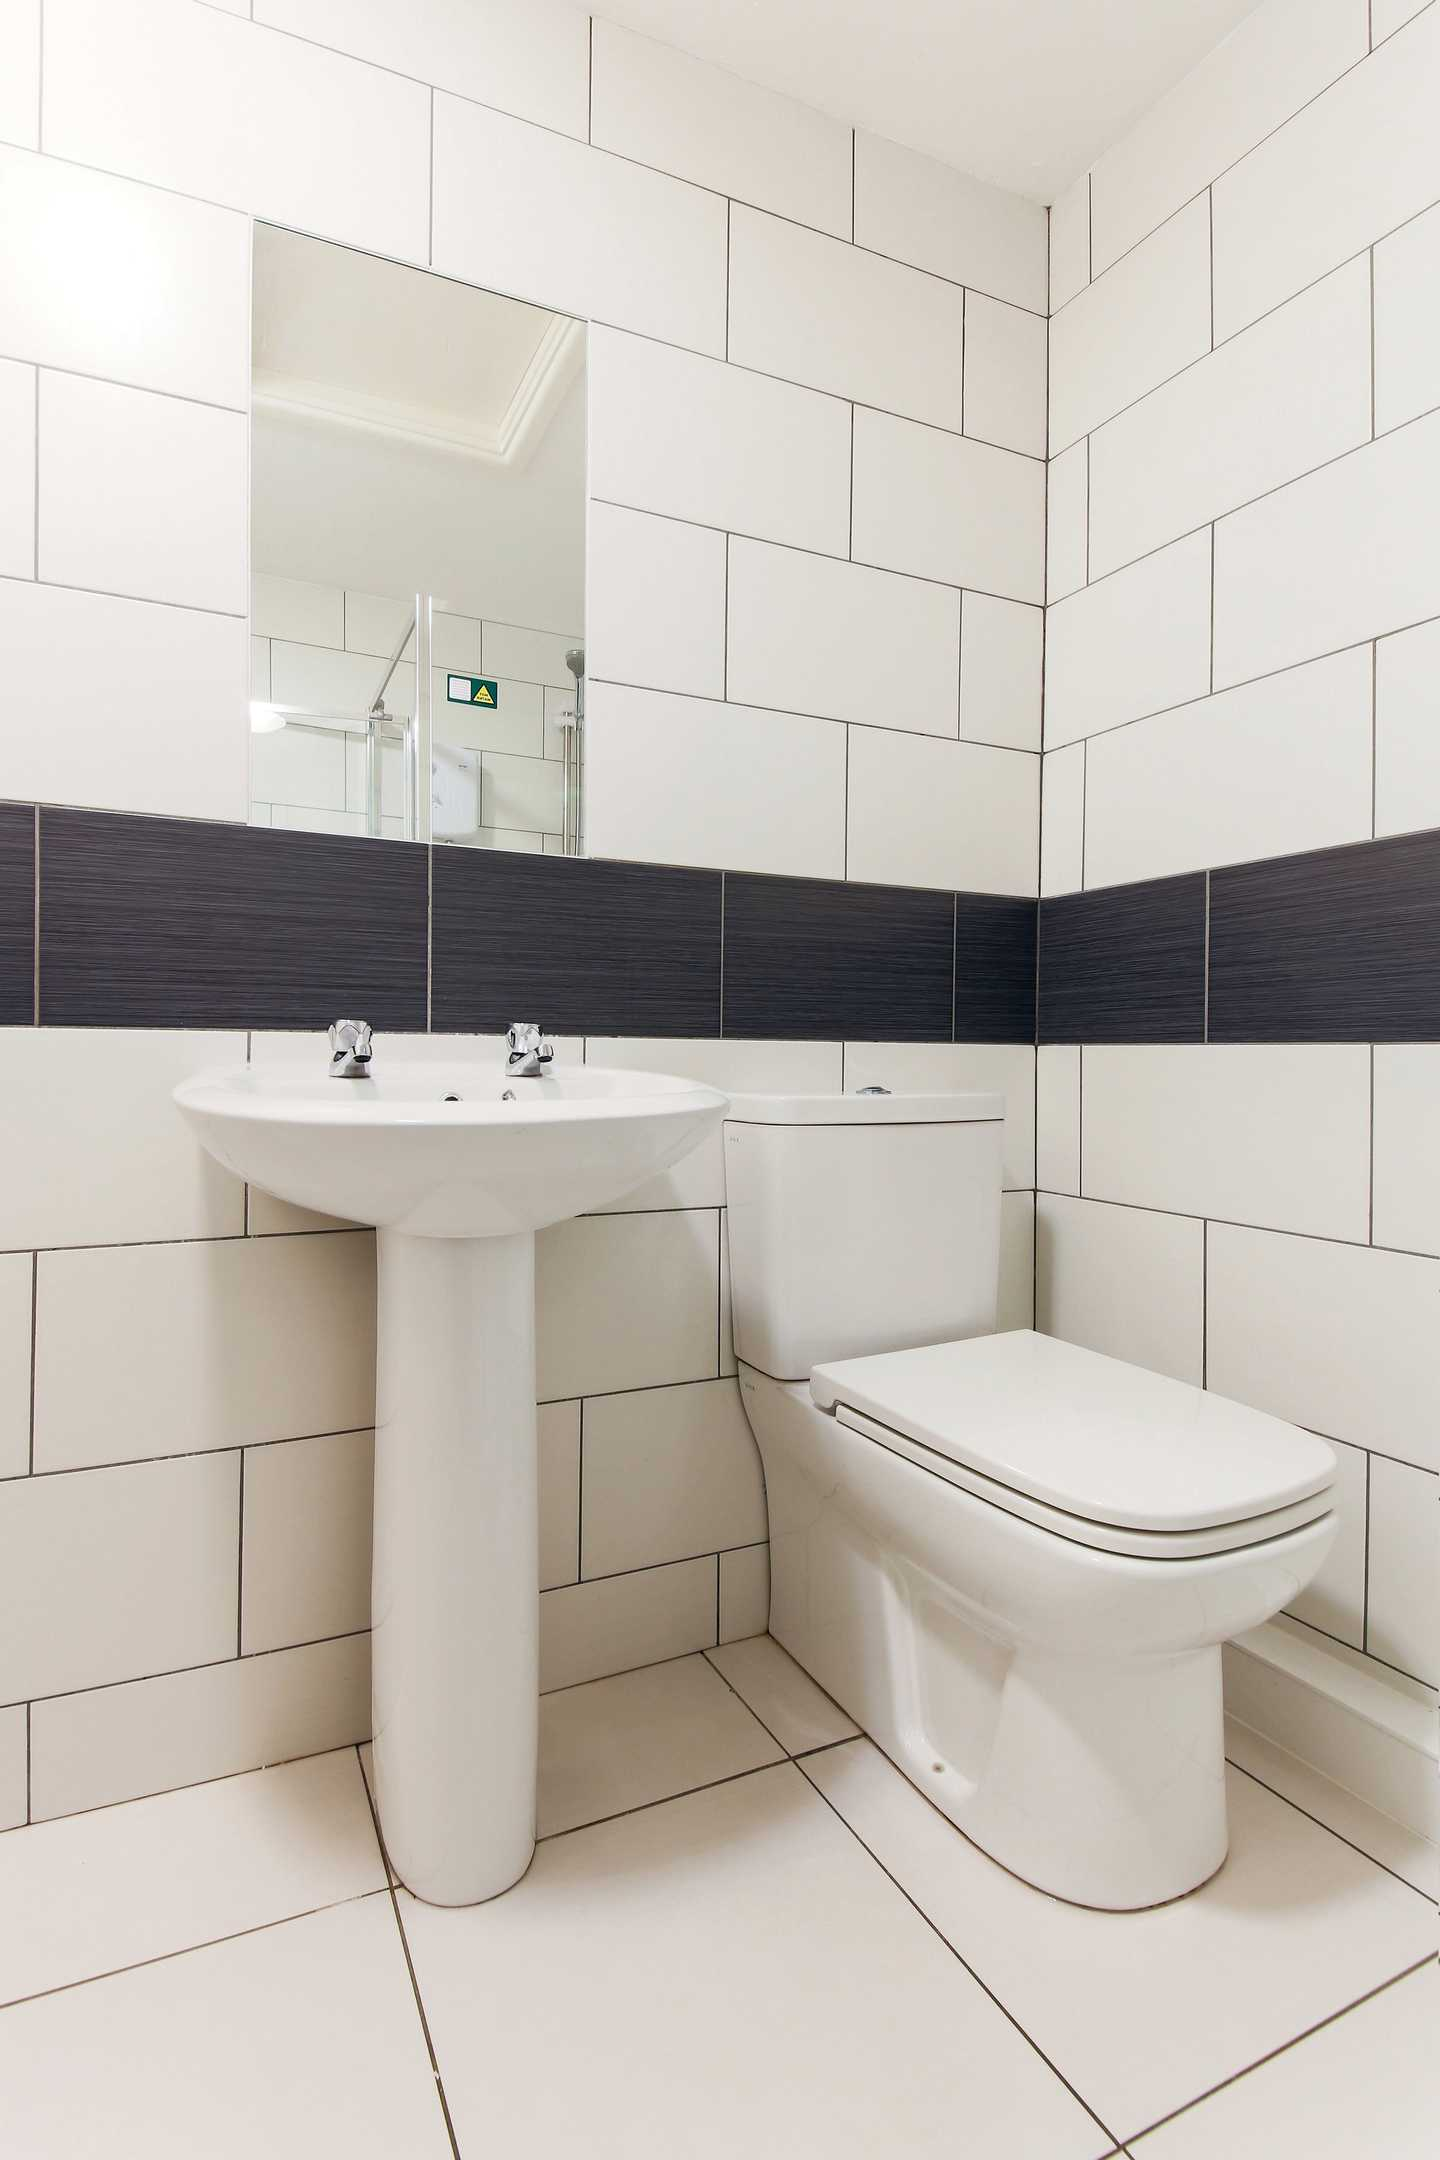 A Premier chalet bathroom with toilets, sink and mirror